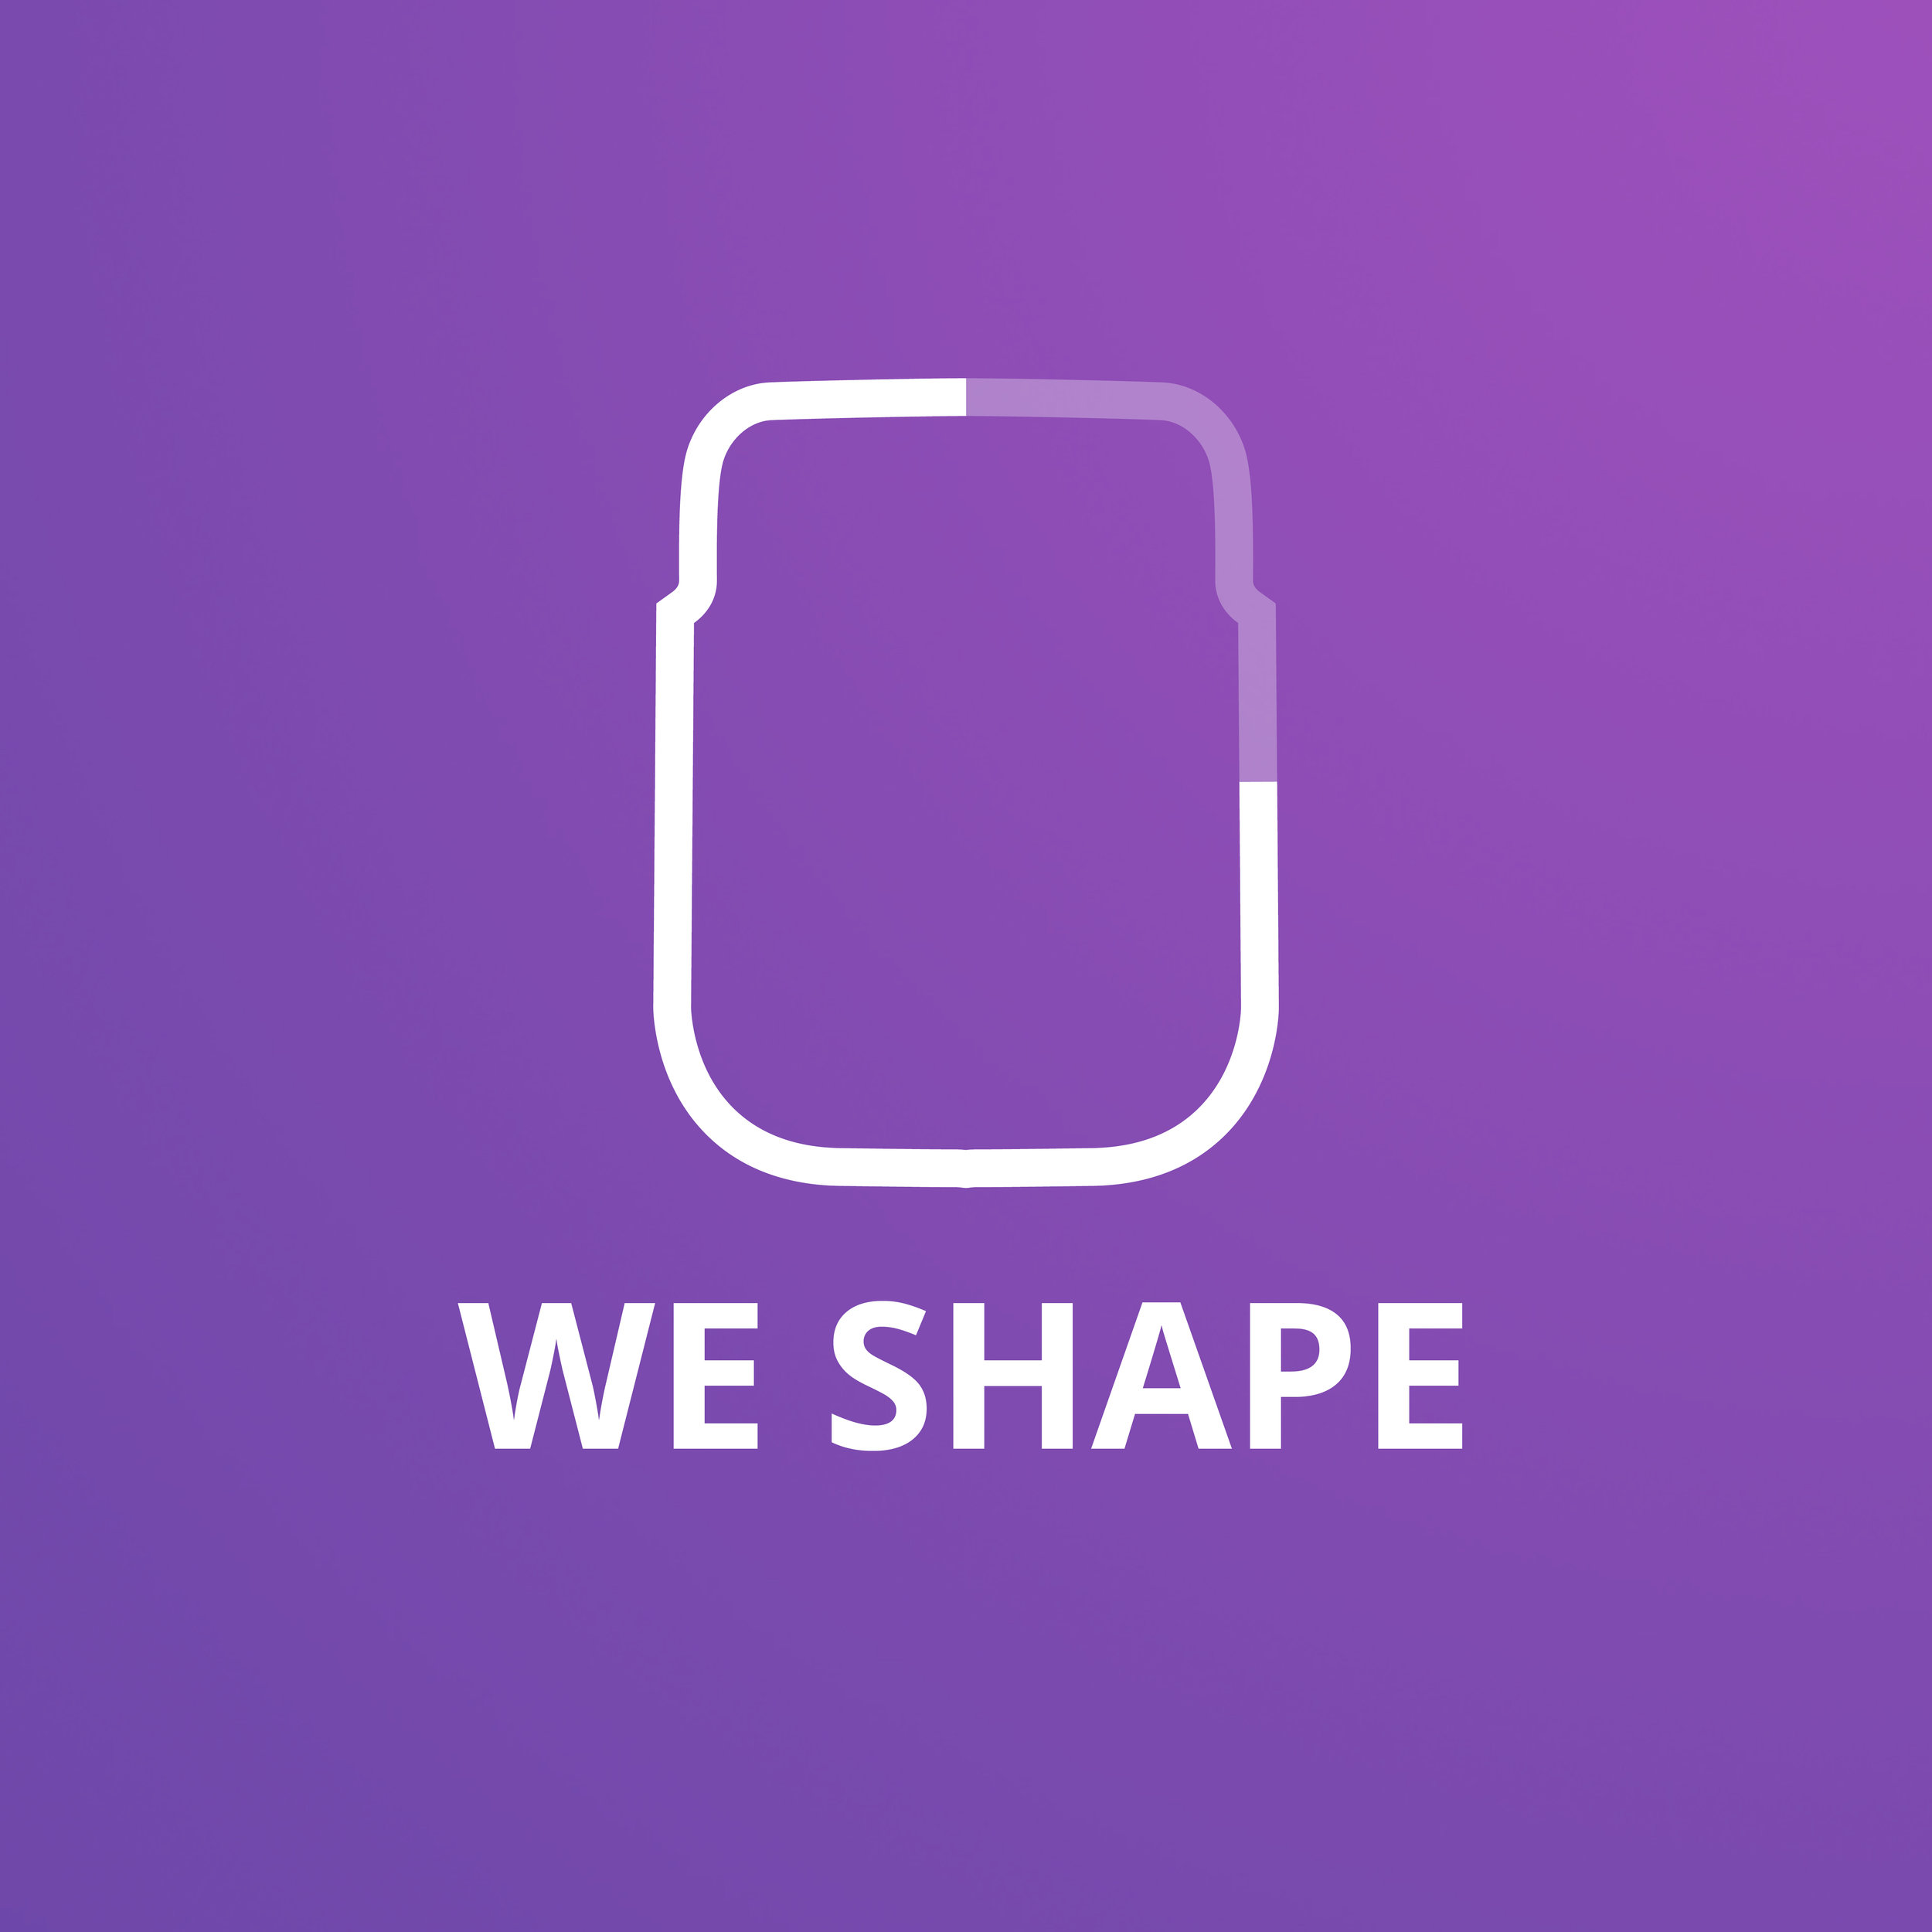 We Shape-01.jpg